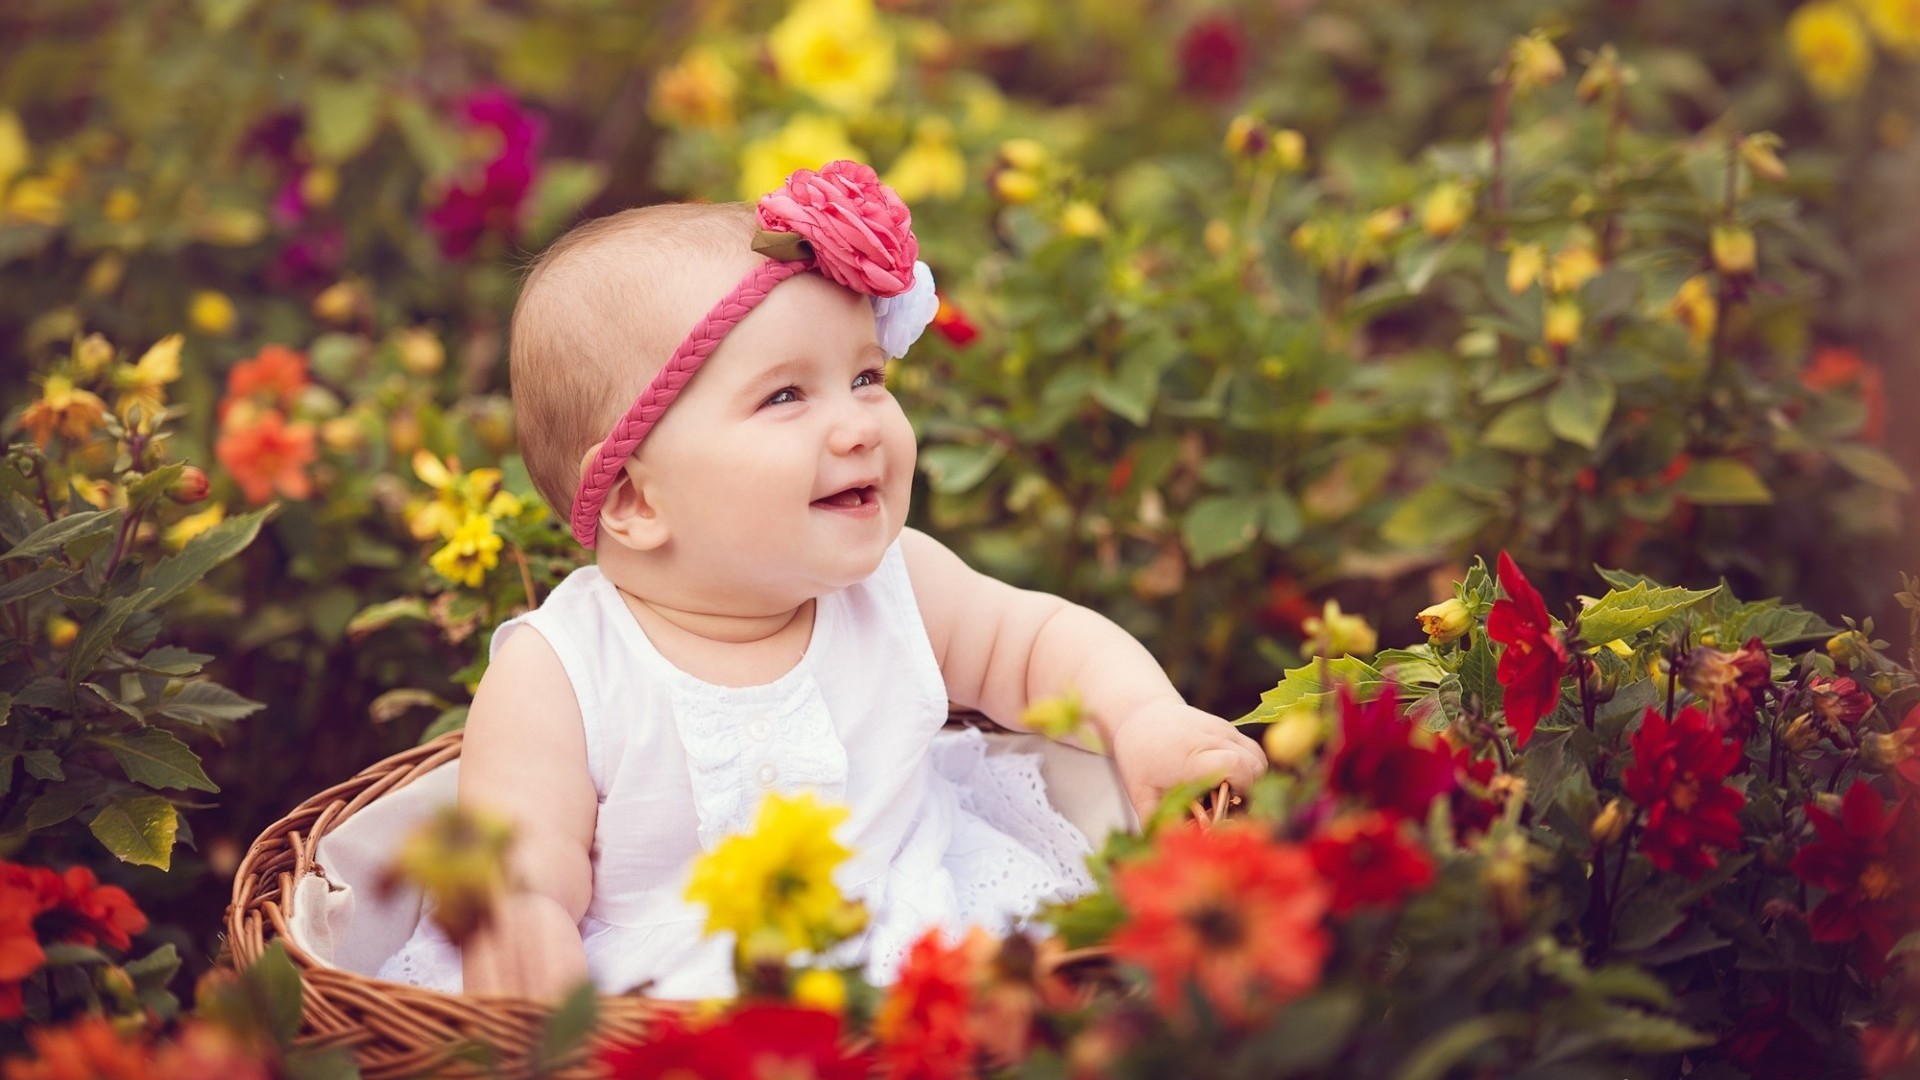 Cute Baby in Garden Photo